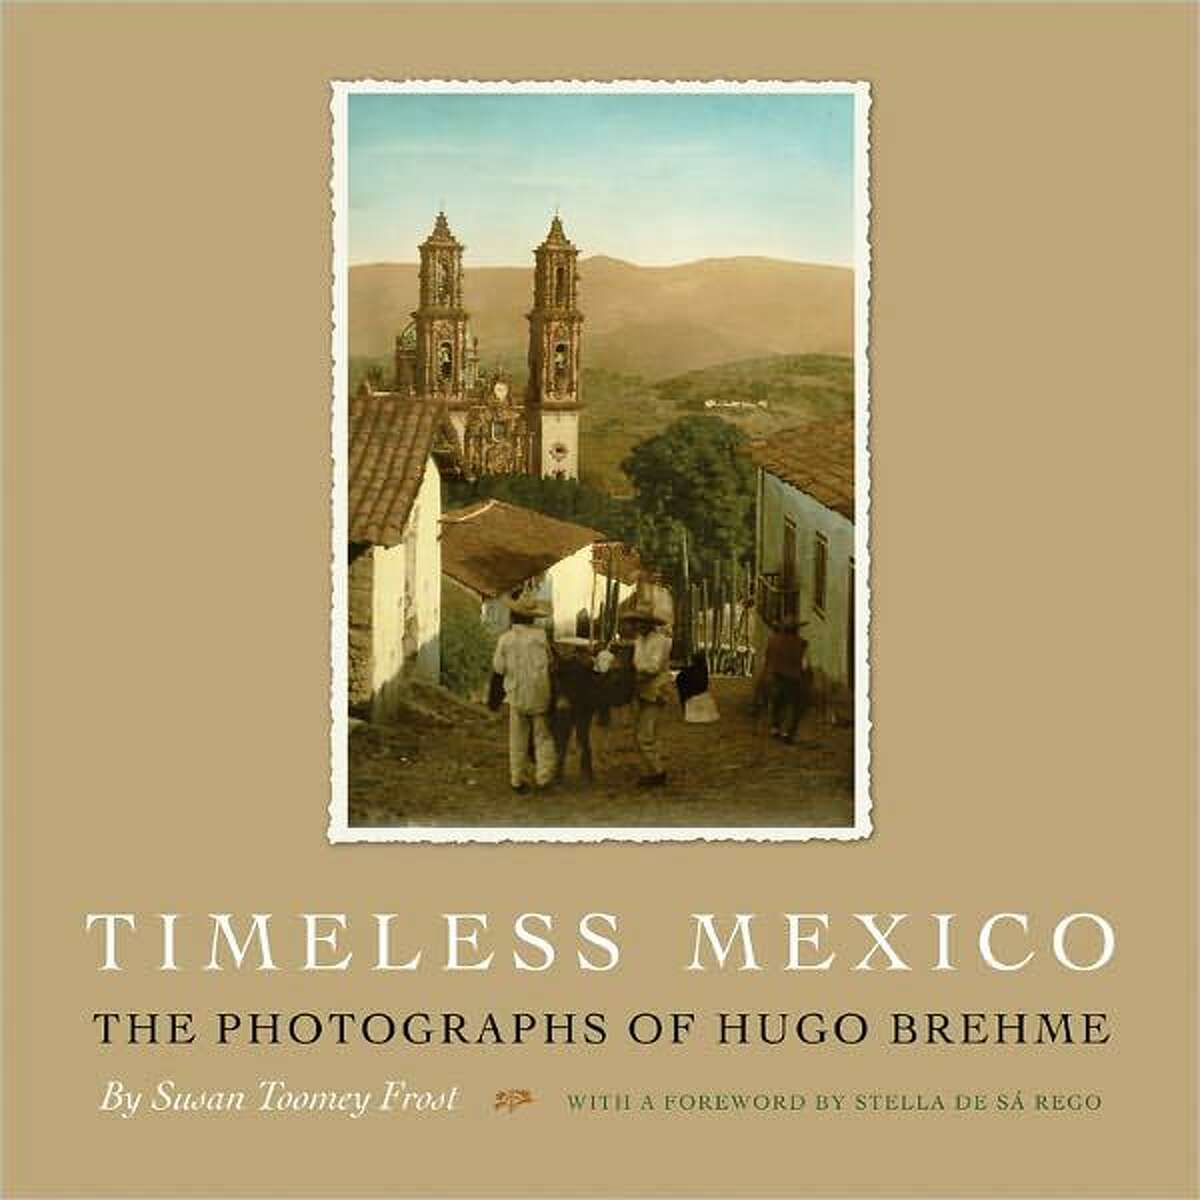 """San Antonio scholar and writer Susan Toomey Frost's new book explores the career of German/Mexican photographer Hugo Brehme in """"Timeless Mexico."""""""